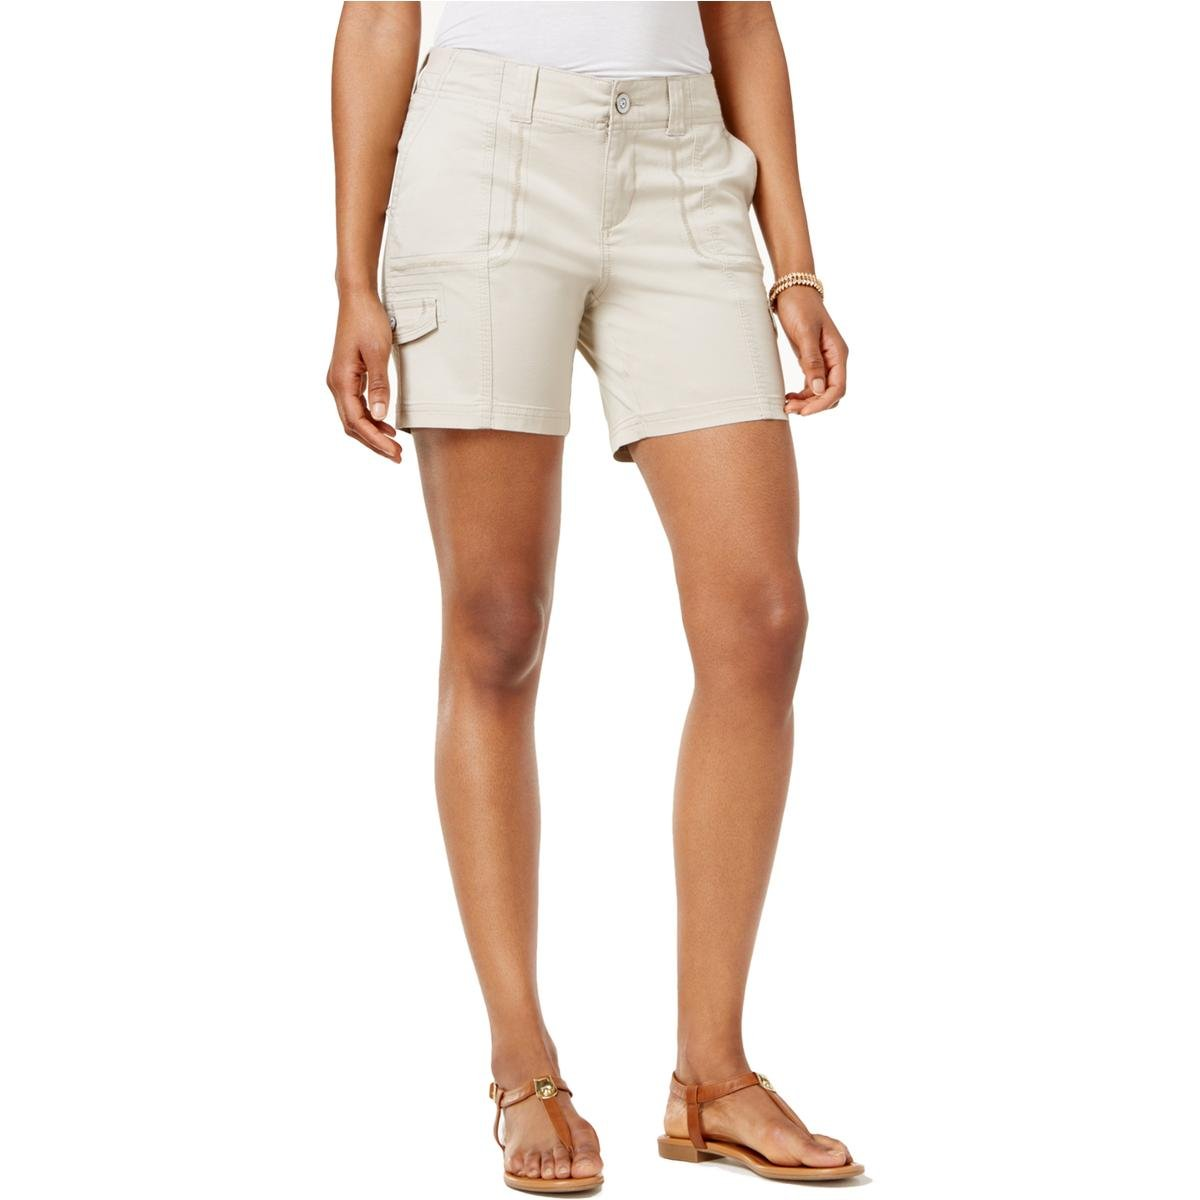 Style & Co.. Womens Petites Mid-Rise Comfort Waist Cargo Shorts Tan 12P by Style & Co. (Image #1)